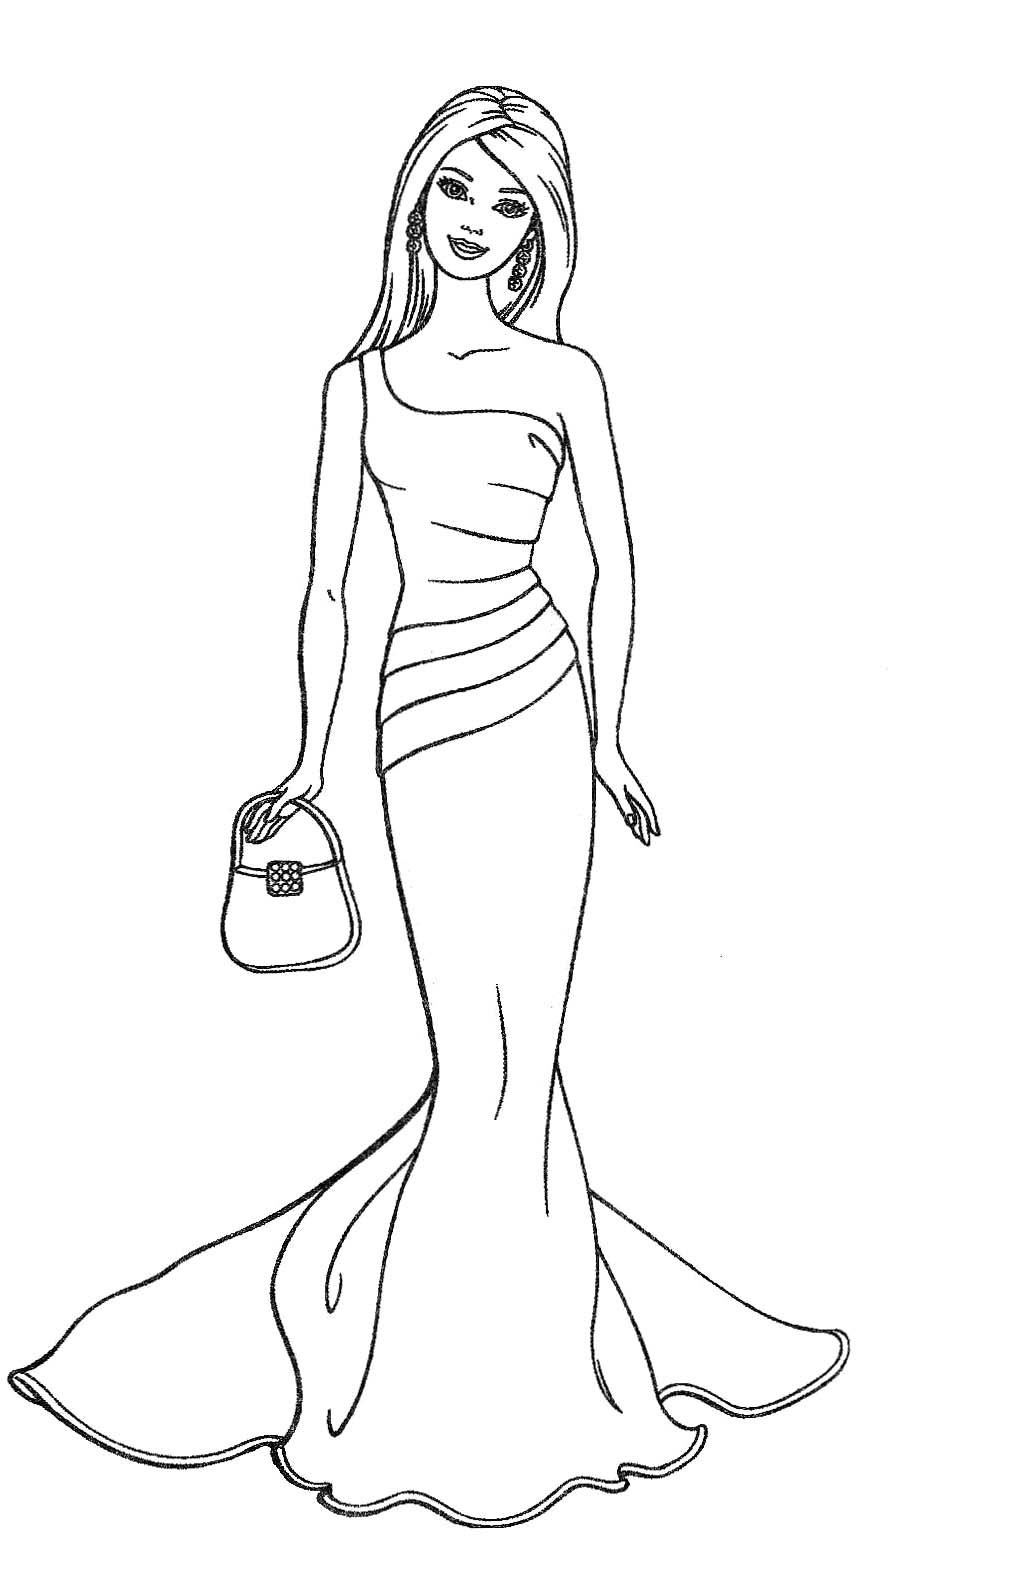 barbie doll pictures to print 1000 images about coloriage barbie on pinterest barbie barbie to pictures doll print